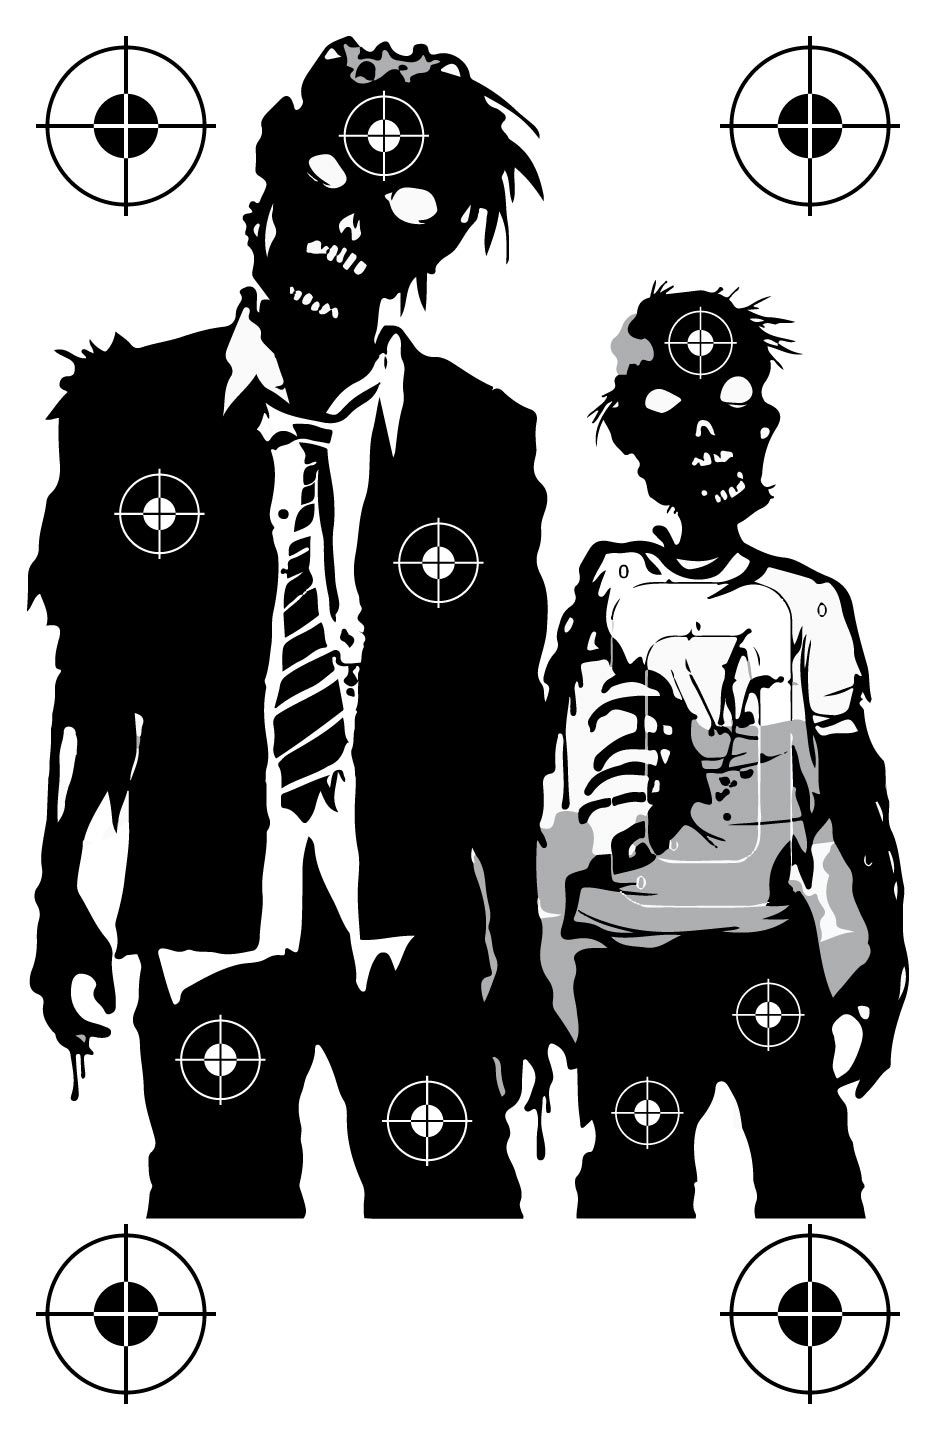 Zombie Family Shooting Target At Photosandfun Com Shooting Targets Target Practice Zombie Apocalypse Party